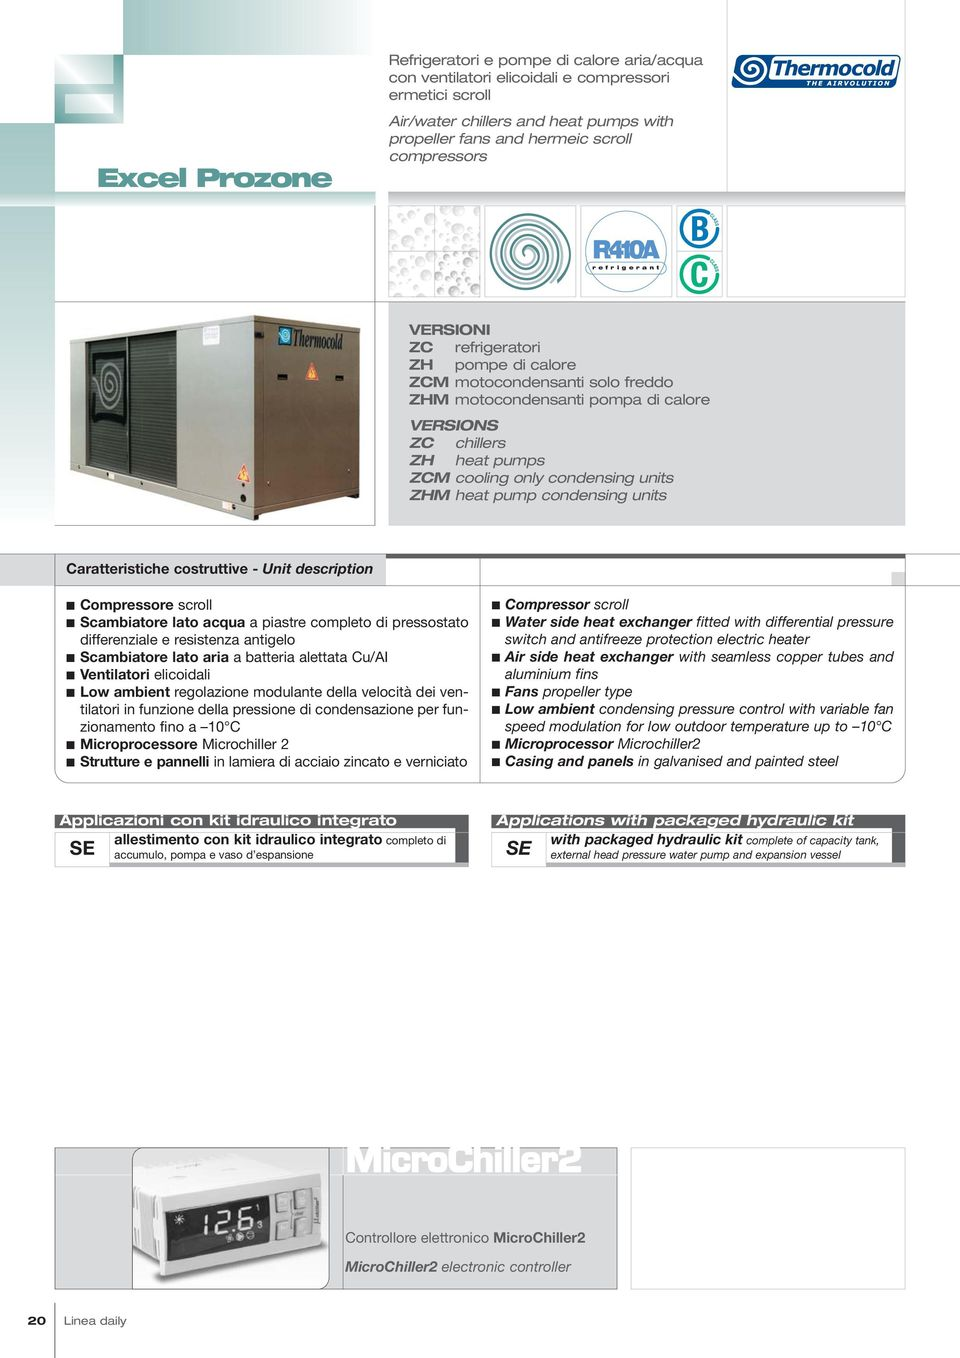 heat pump condensing units aratteristiche costruttive Unit description ompressore scroll Scambiatore lato acqua a piastre completo di pressostato differenziale e resistenza antigelo Scambiatore lato